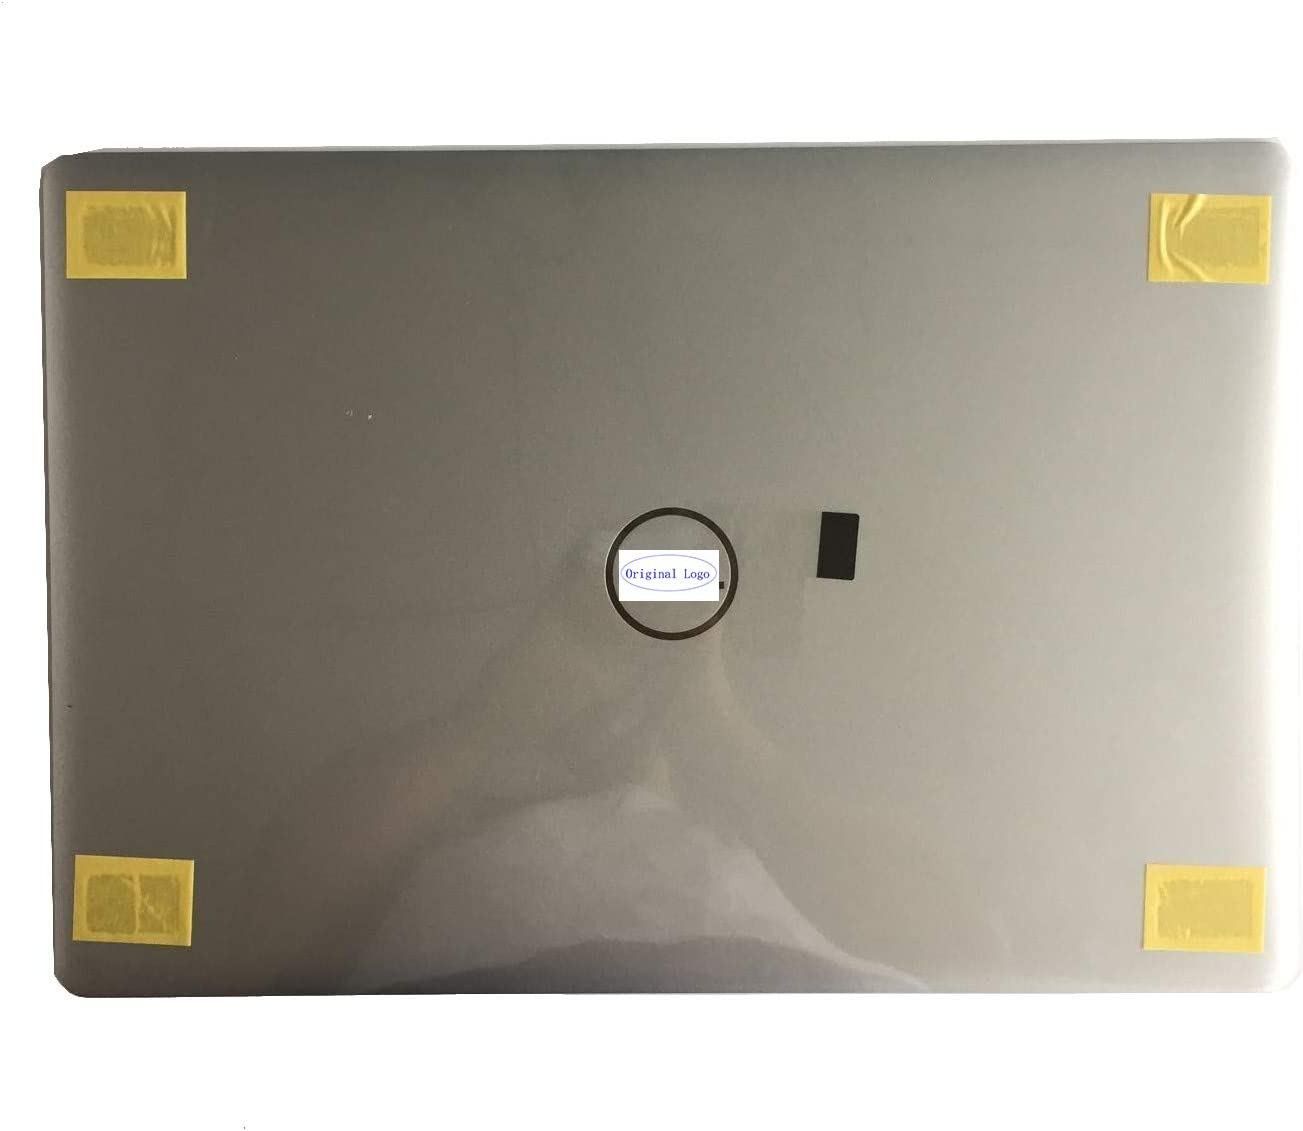 New Replacement for Dell Inspiron 15 5000 5570 Laptop LCD Cover Back Rear Top Lid 0X4FTD X4FTD Silver